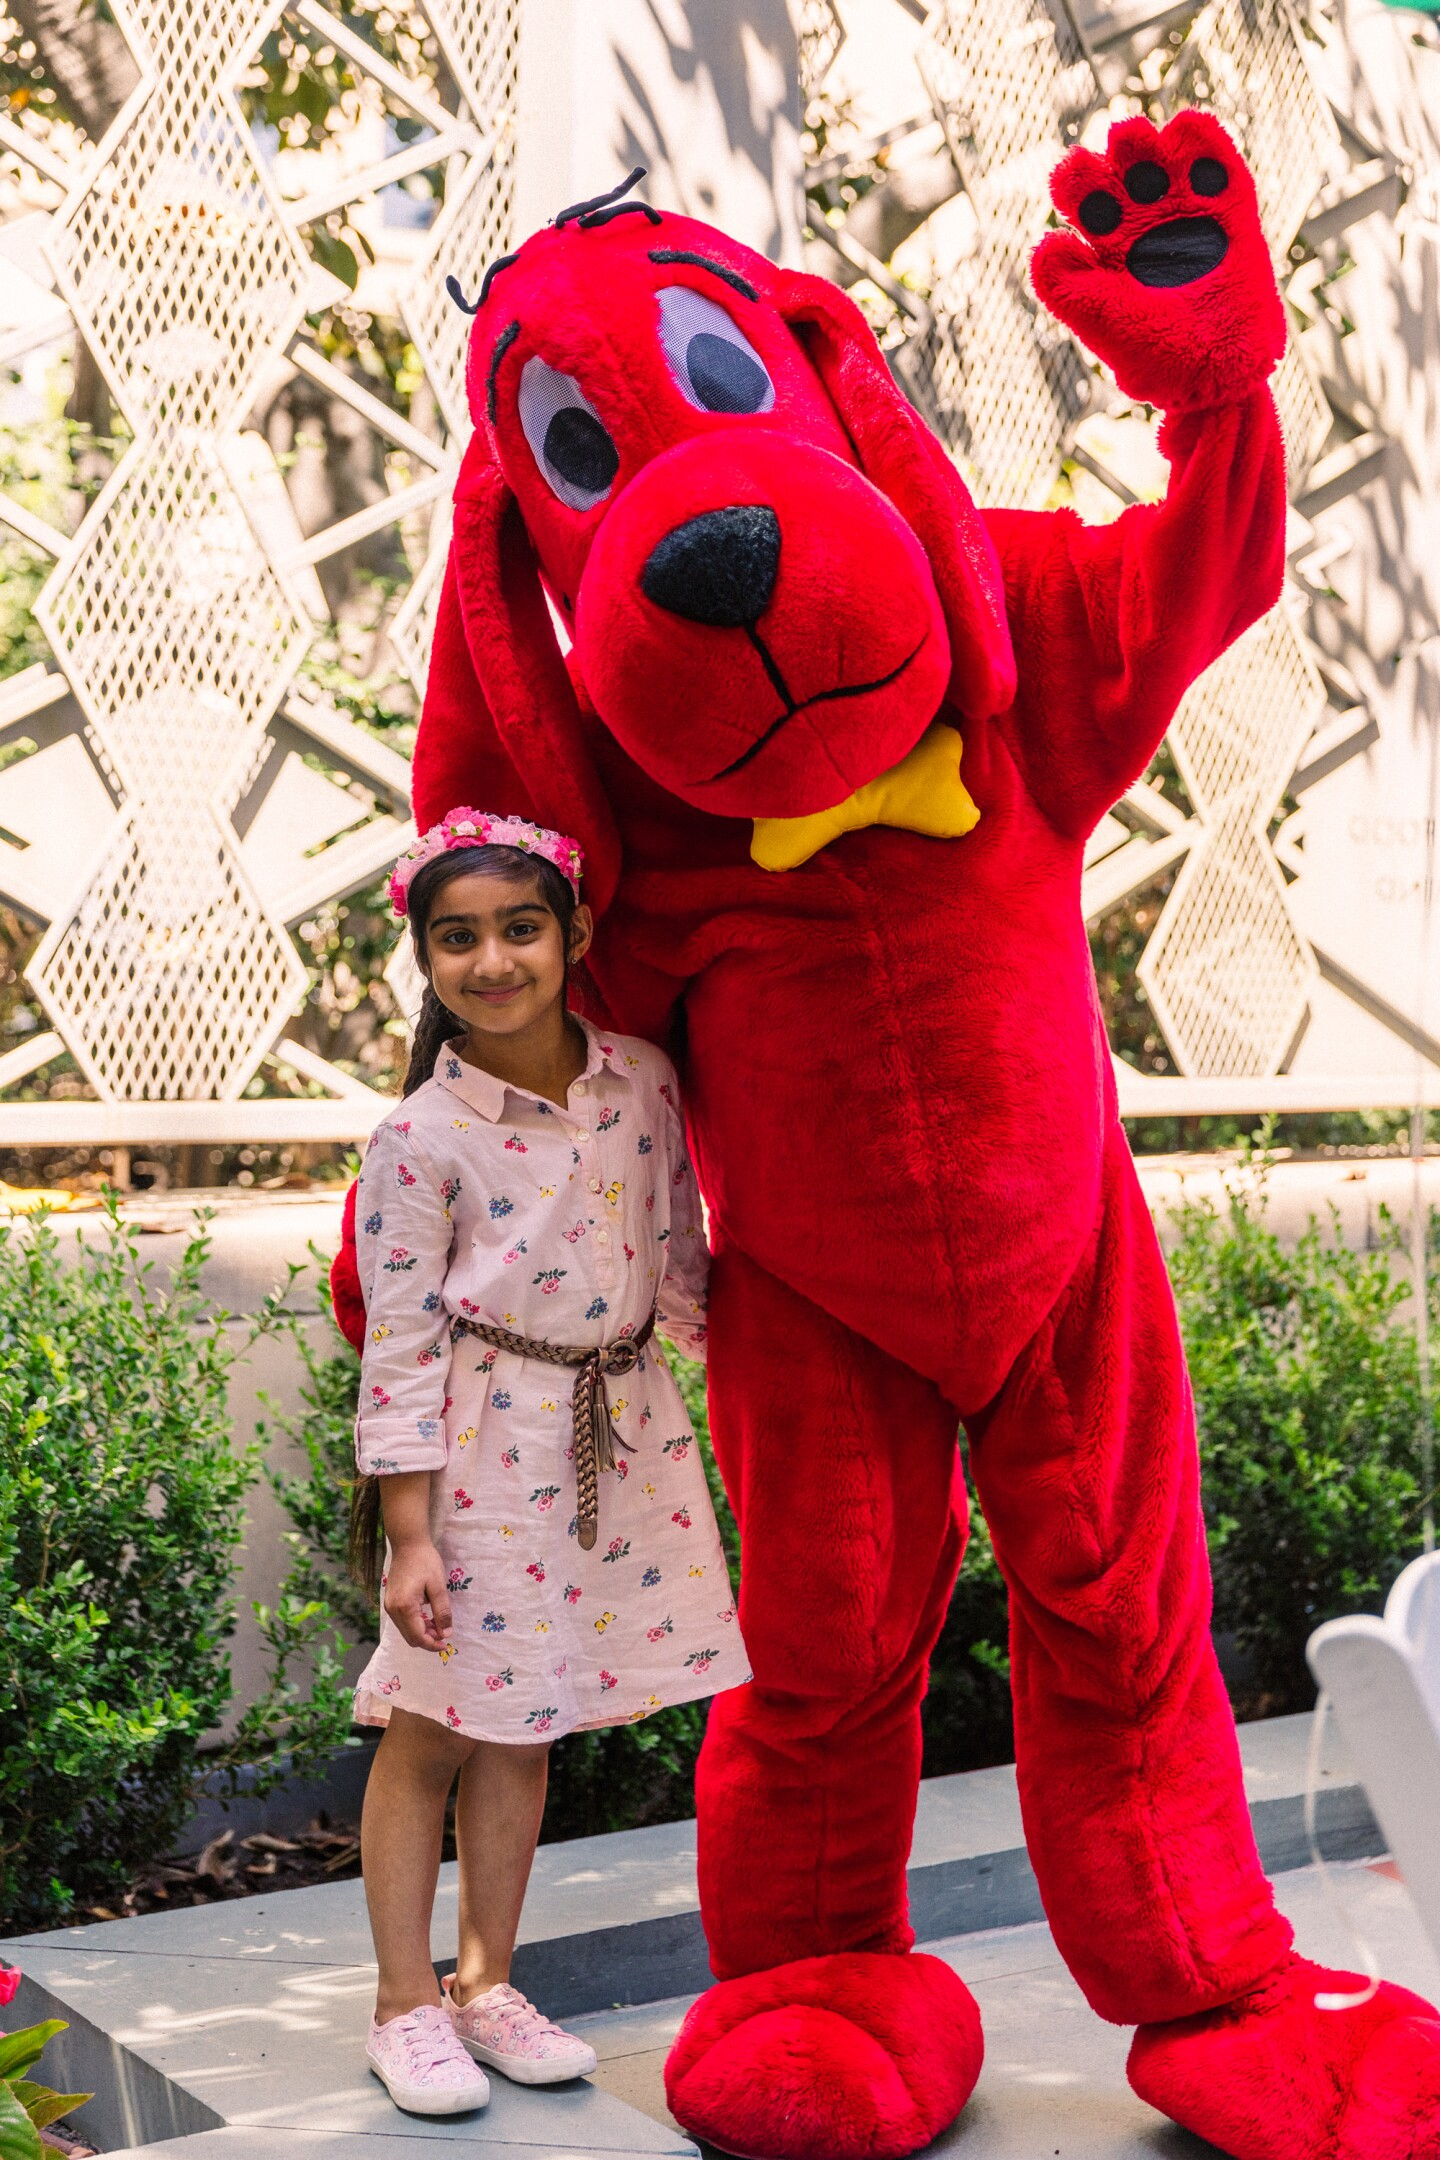 Kindergartener Surveen Singh, who won second place, poses with Clifford the Big Red Dog | Courtesy of Mae Koo Photography